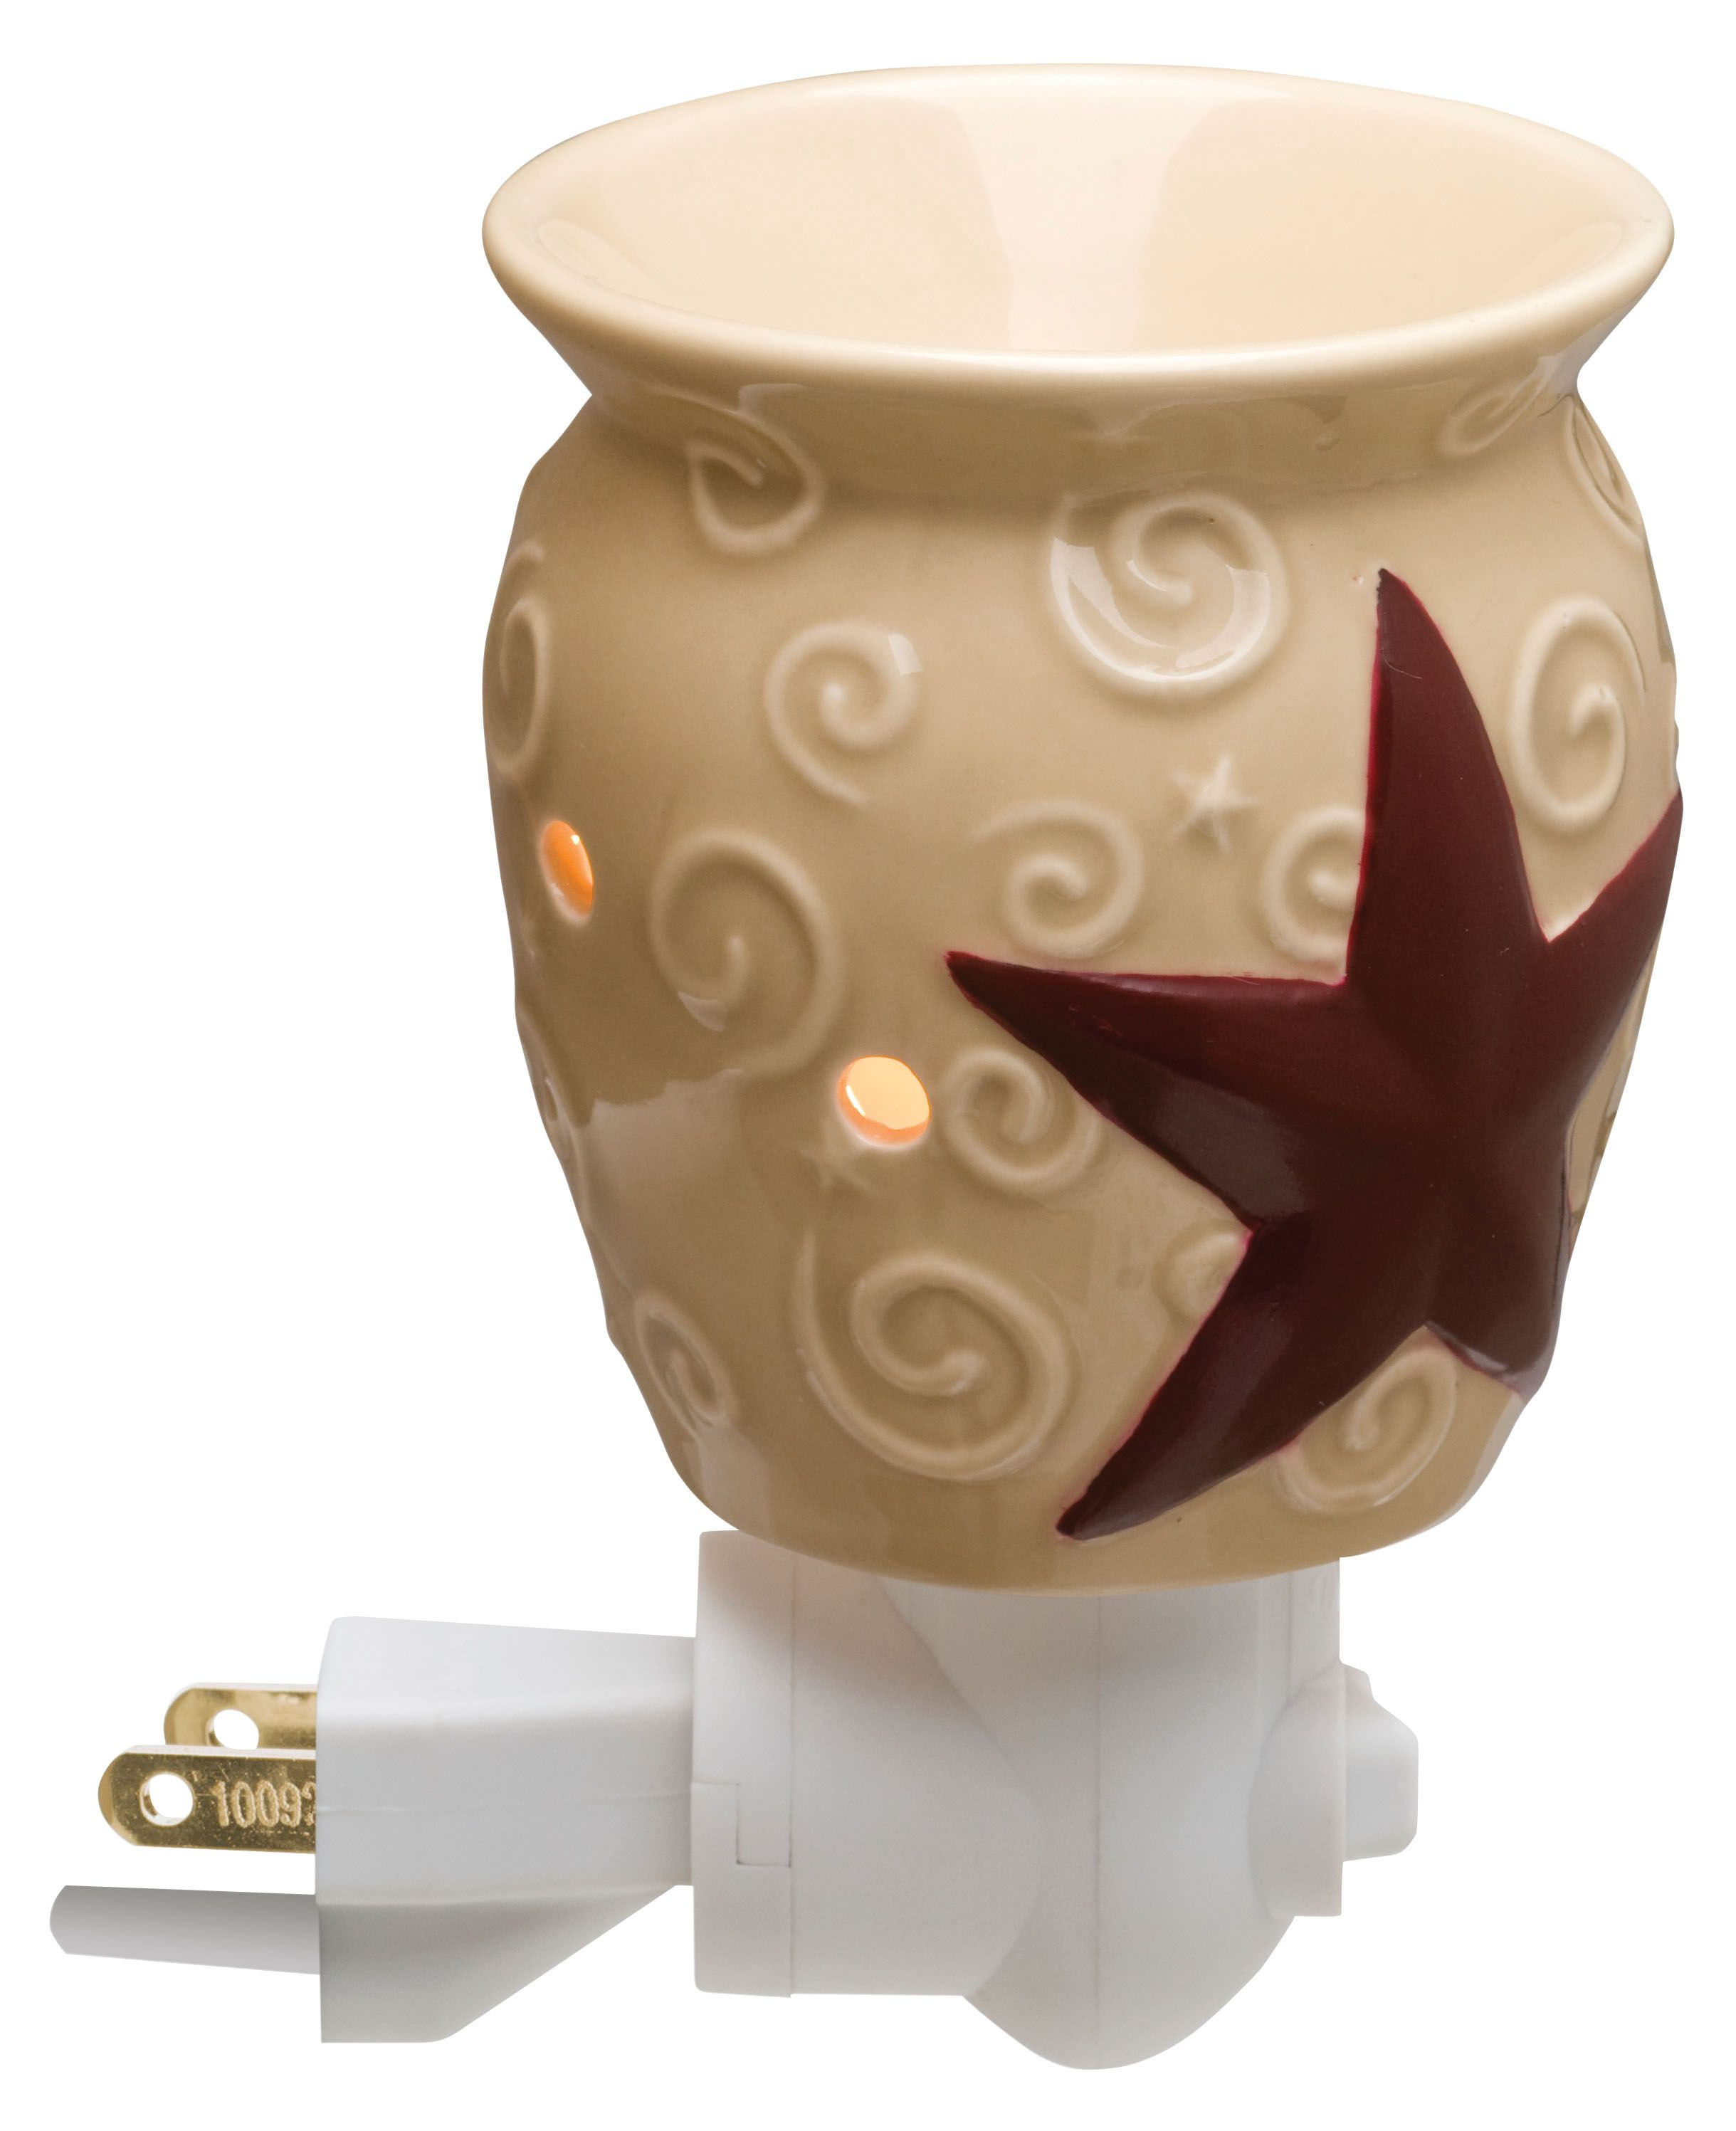 RUSTIC STAR Plug In Do You Decorate The Country Style This Is